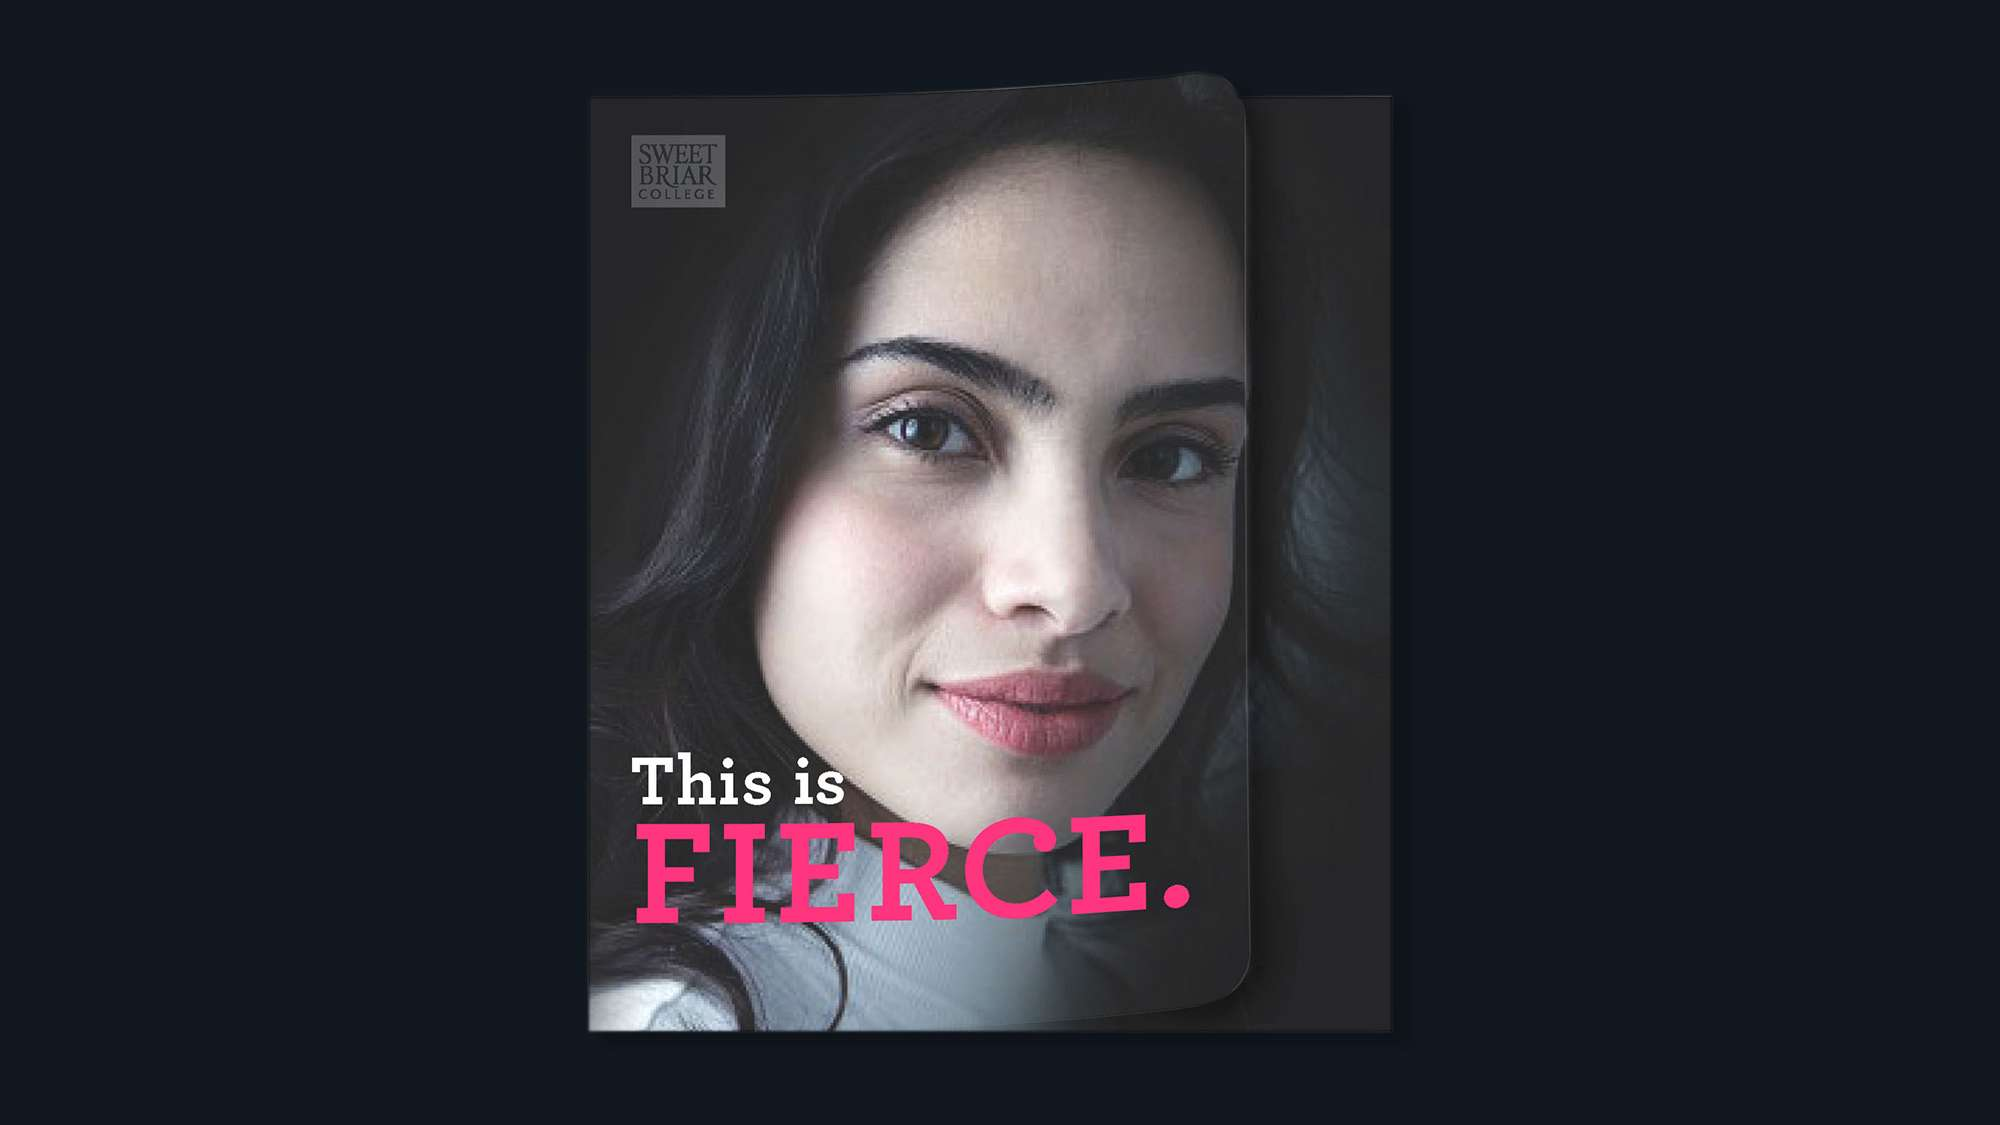 This is fierce. Viewbook cover with a confident college-age latina or white woman.